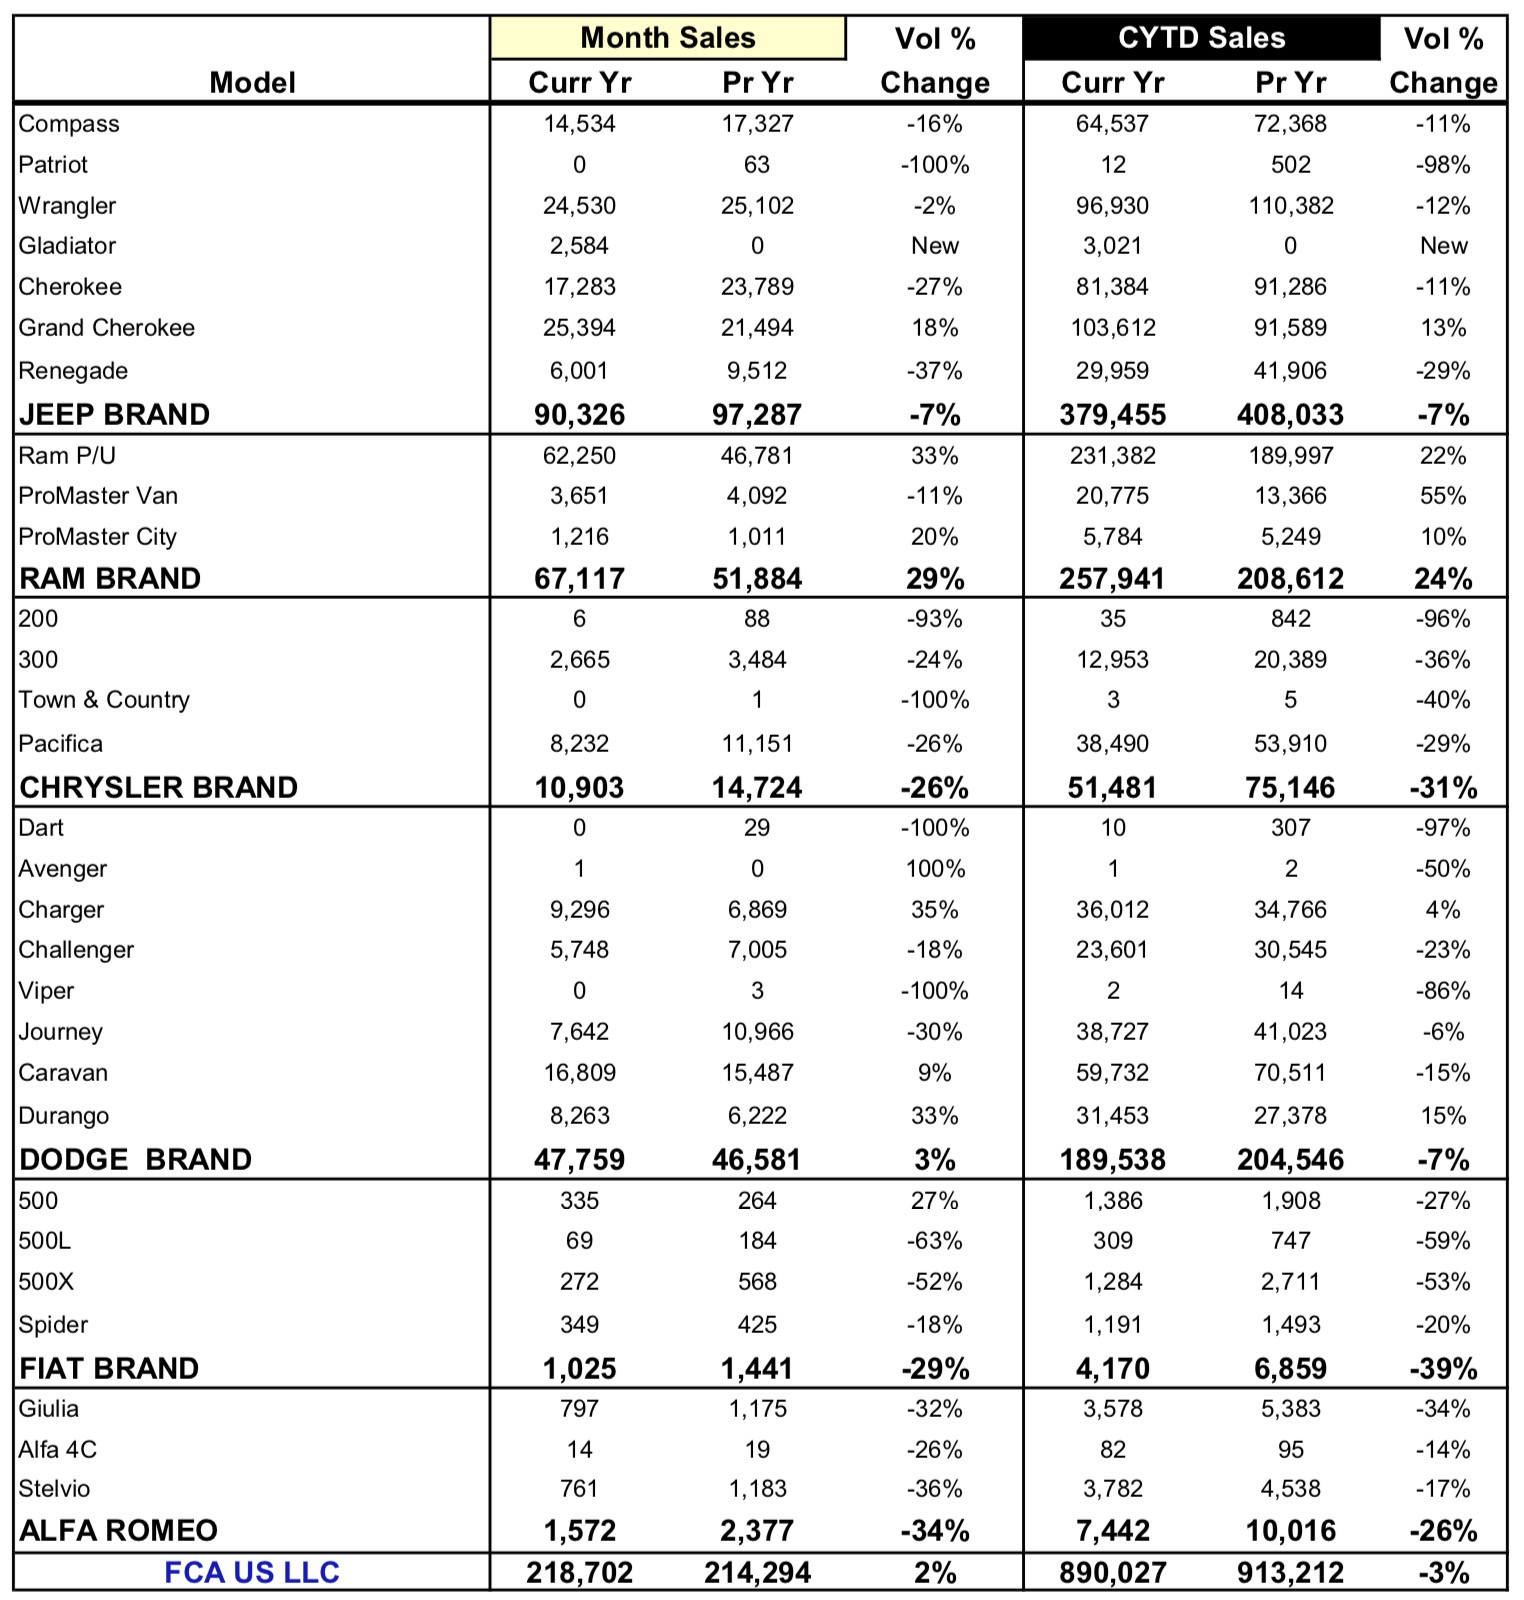 2020 Jeep Gladitor Sales Chart May 2019.jpg